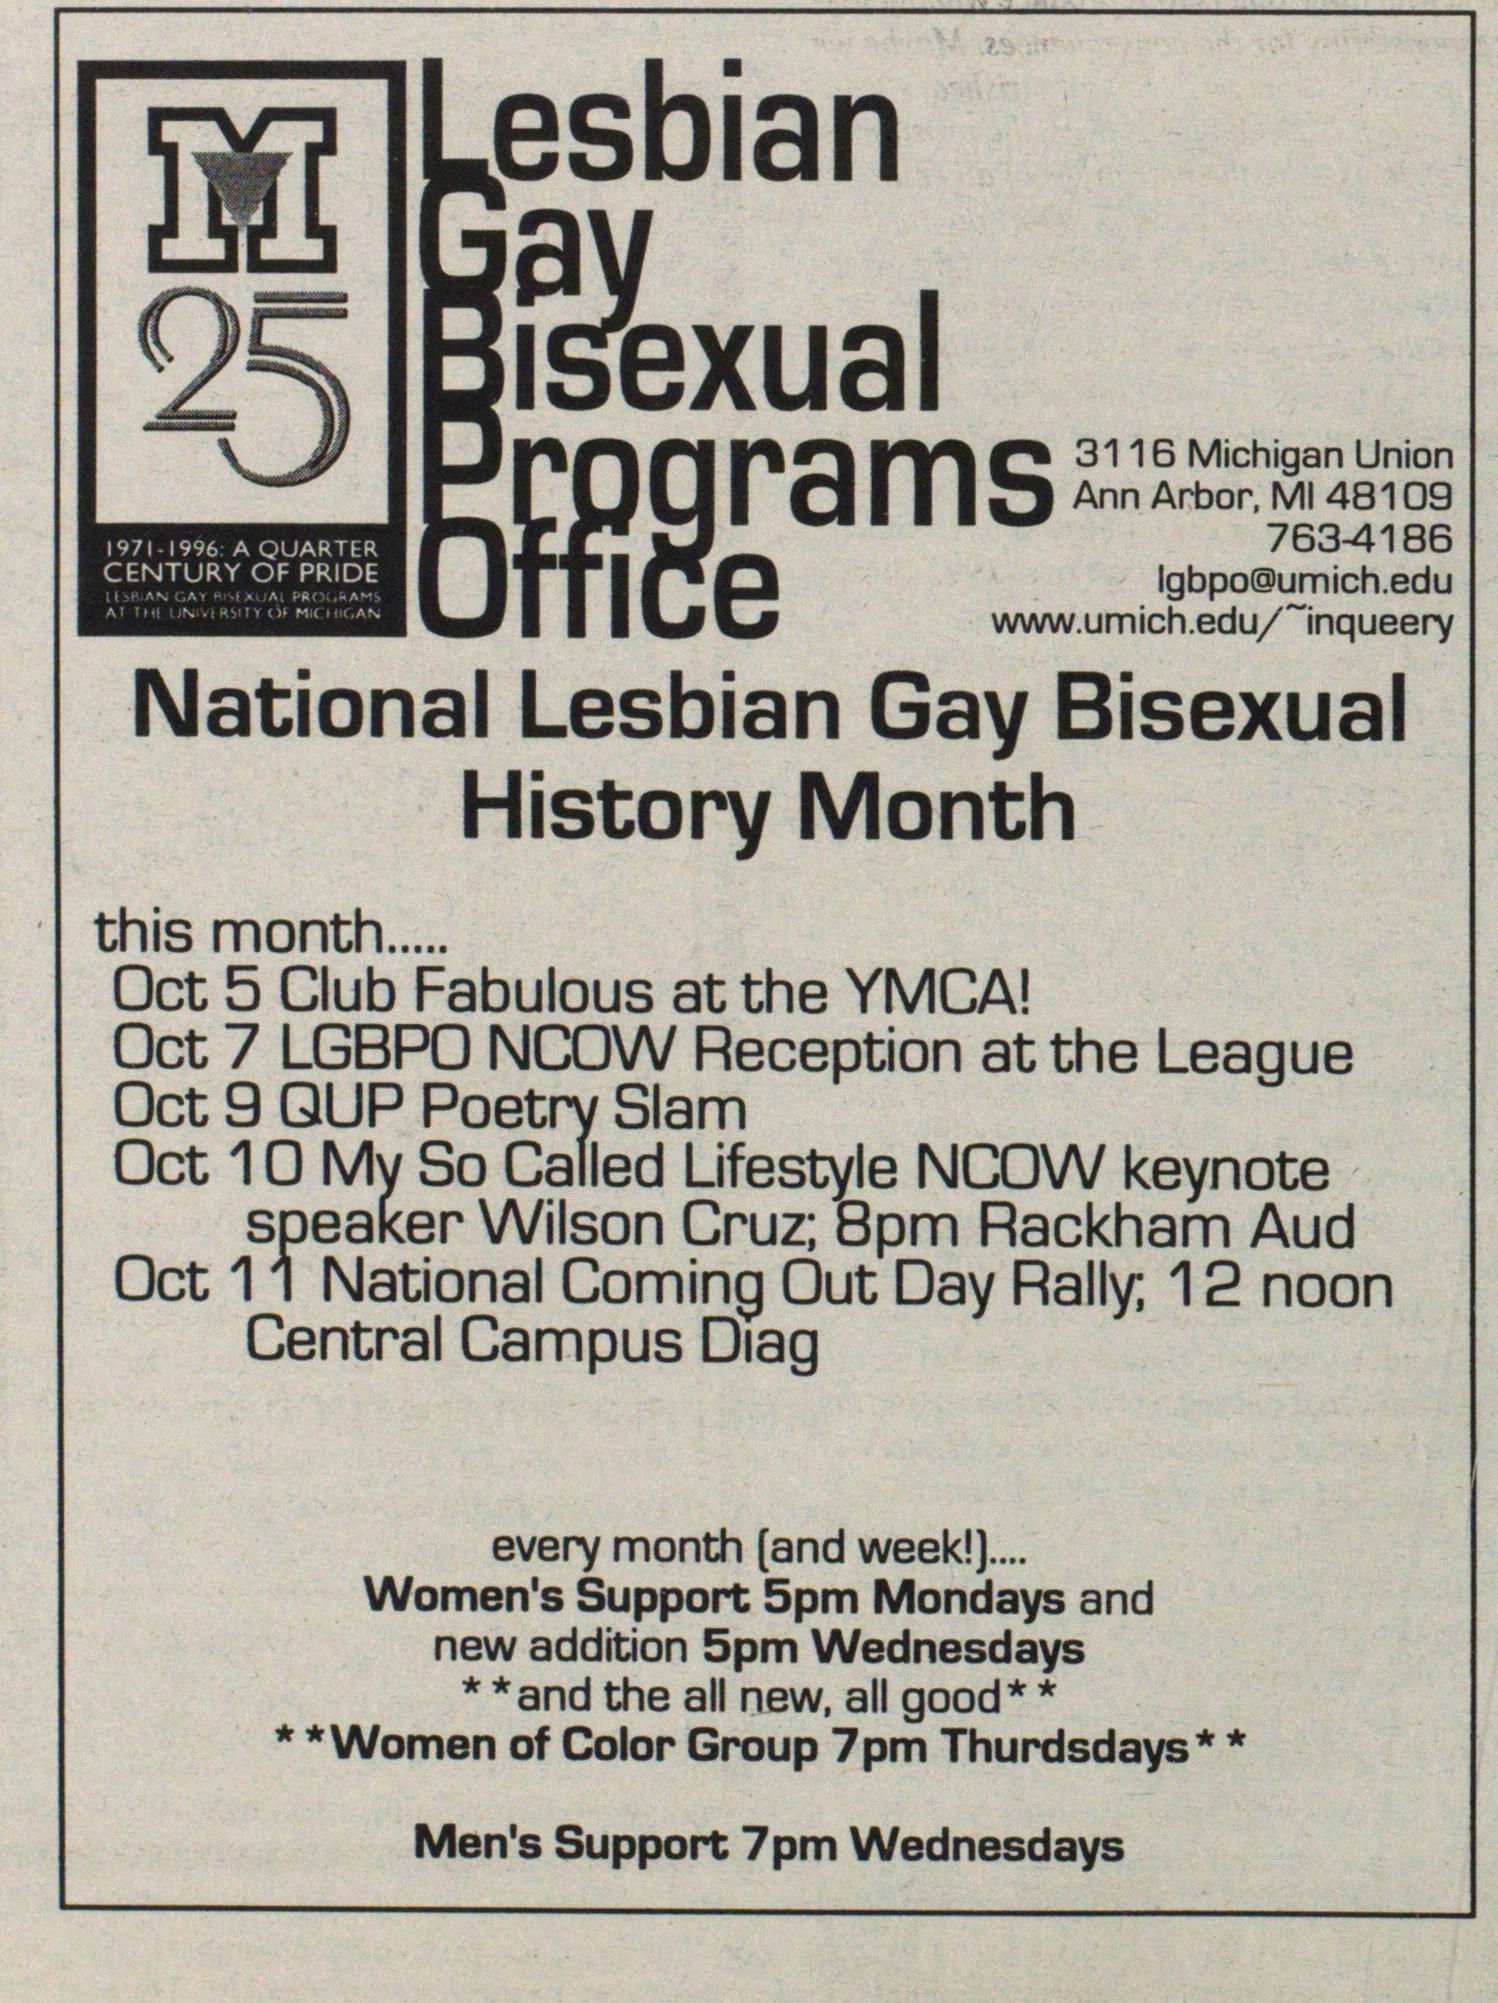 Lesbian Gay Bisexual Programs Office image